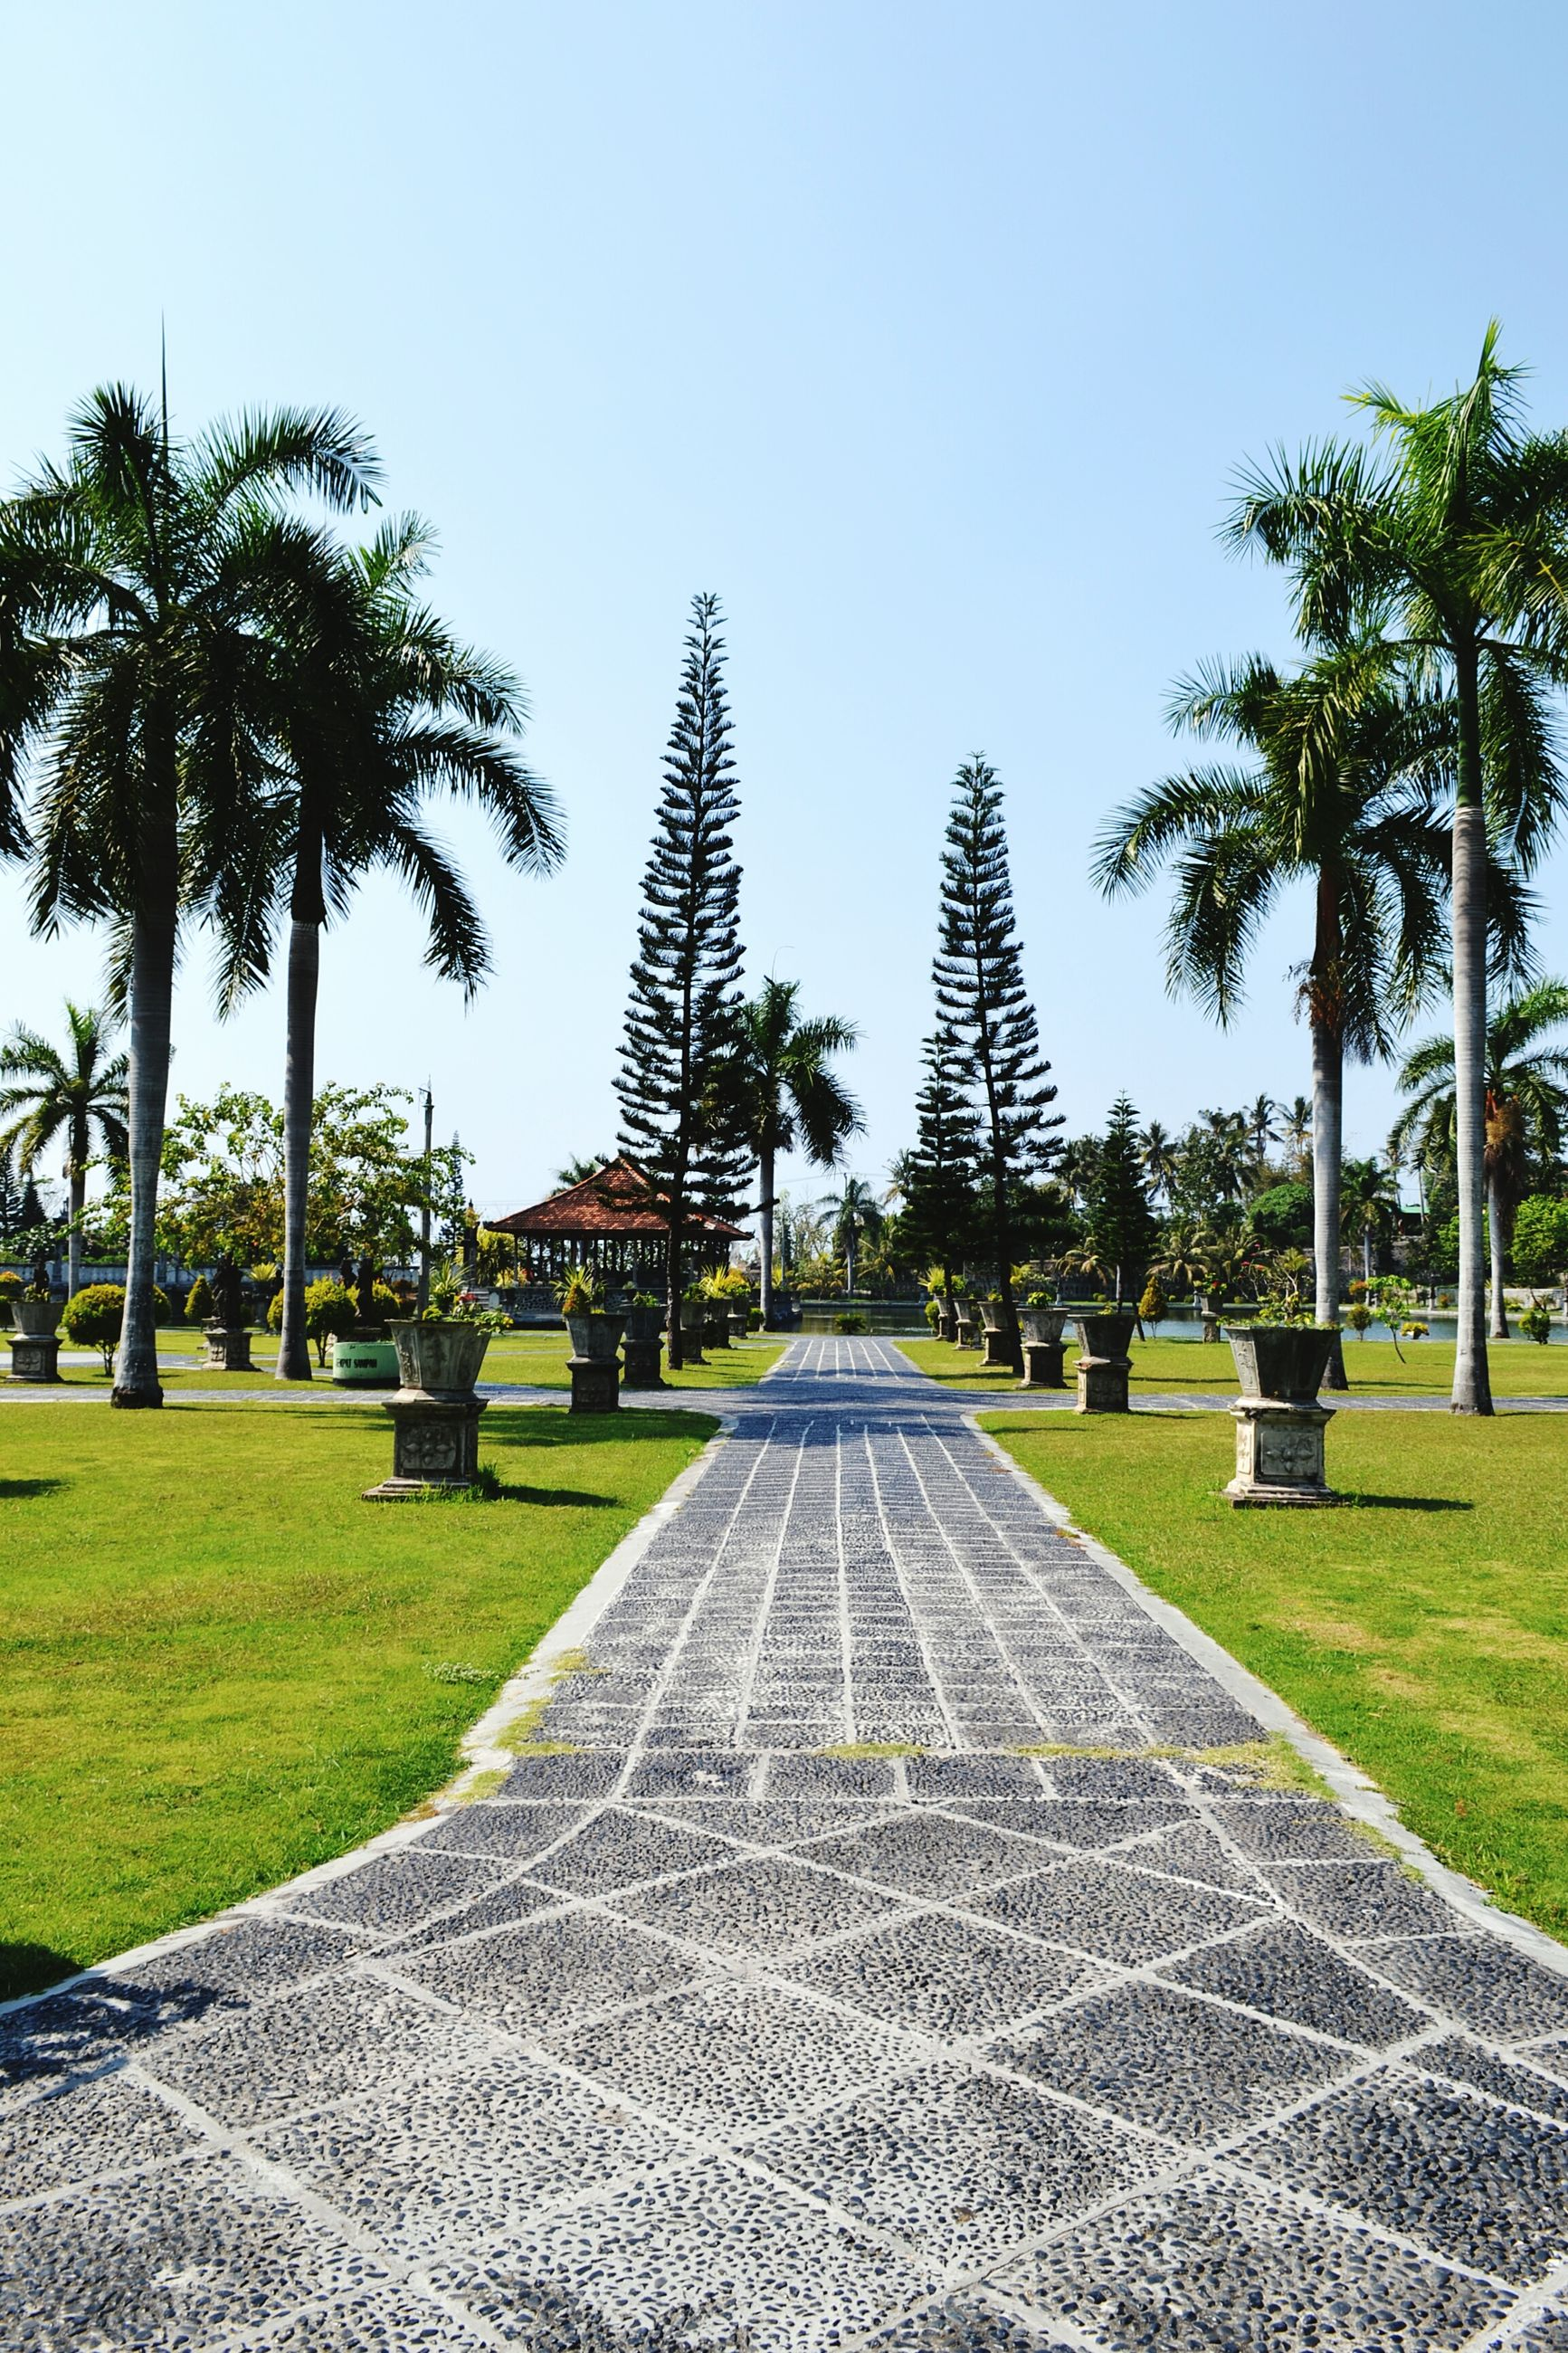 tree, grass, clear sky, park - man made space, the way forward, diminishing perspective, palm tree, green color, treelined, growth, sunlight, footpath, lawn, sky, blue, nature, vanishing point, tranquility, park, shadow